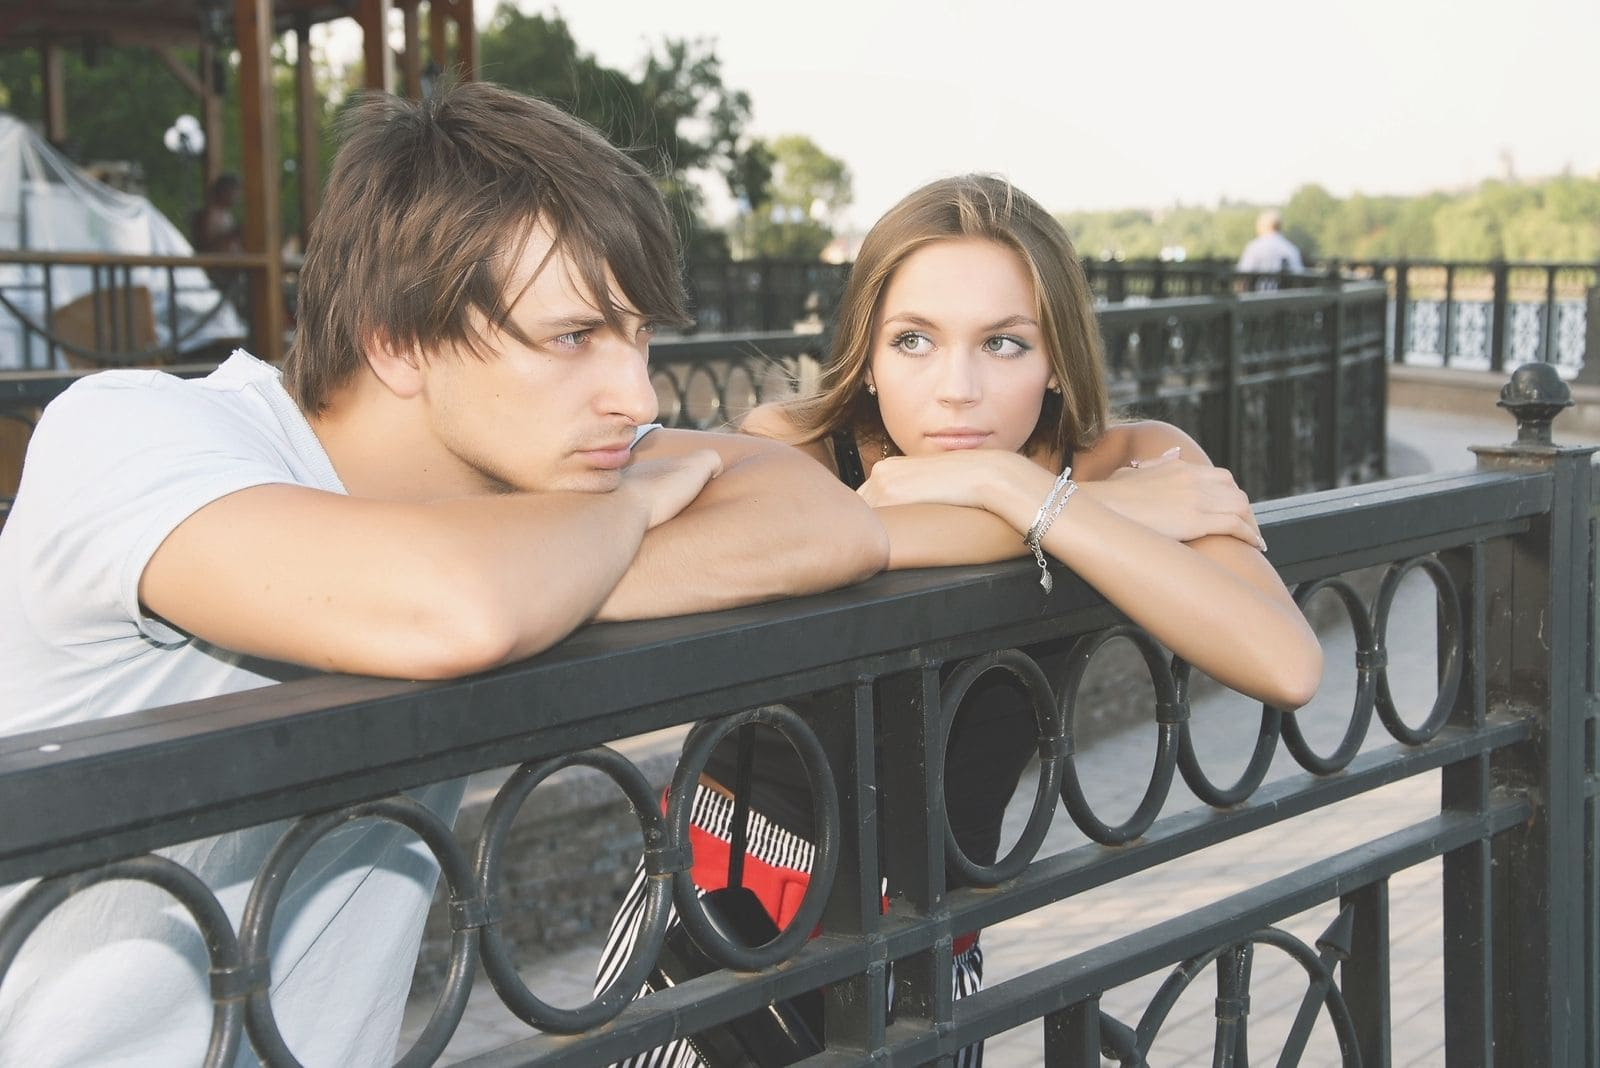 woman staring at the man leaning on the railings outdoors standing beside her